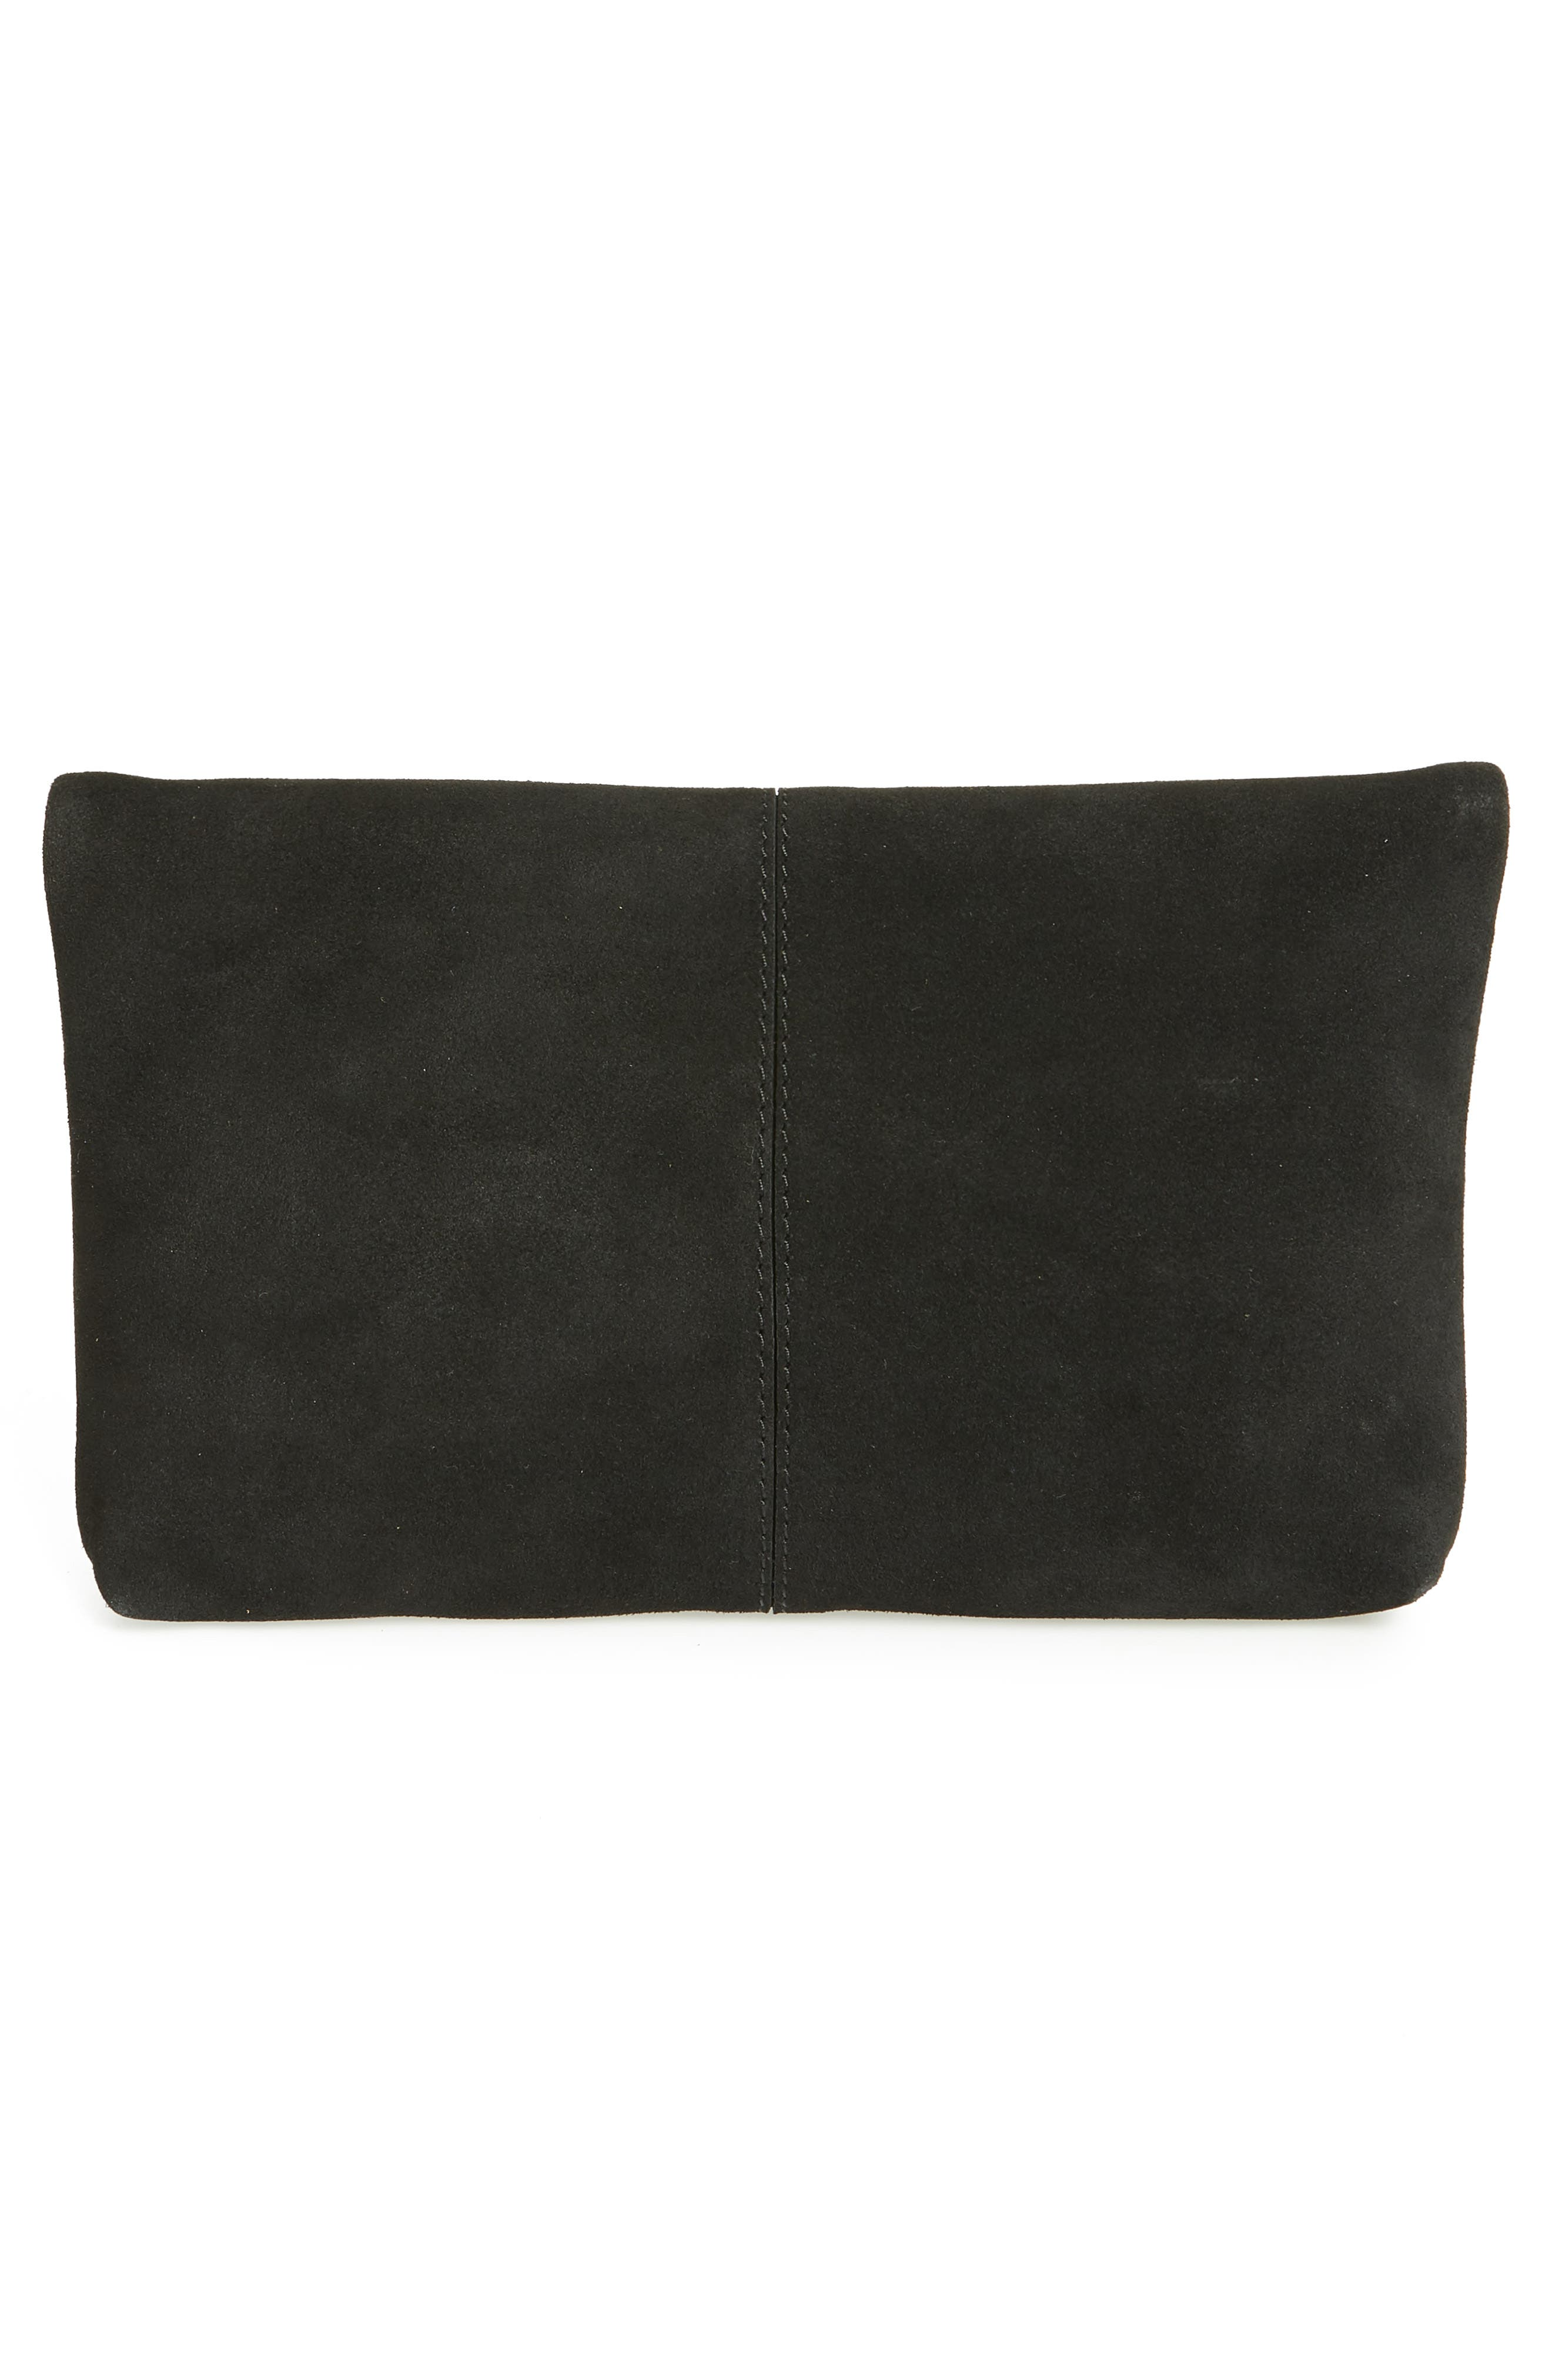 Suede Clutch,                             Alternate thumbnail 3, color,                             BLACK